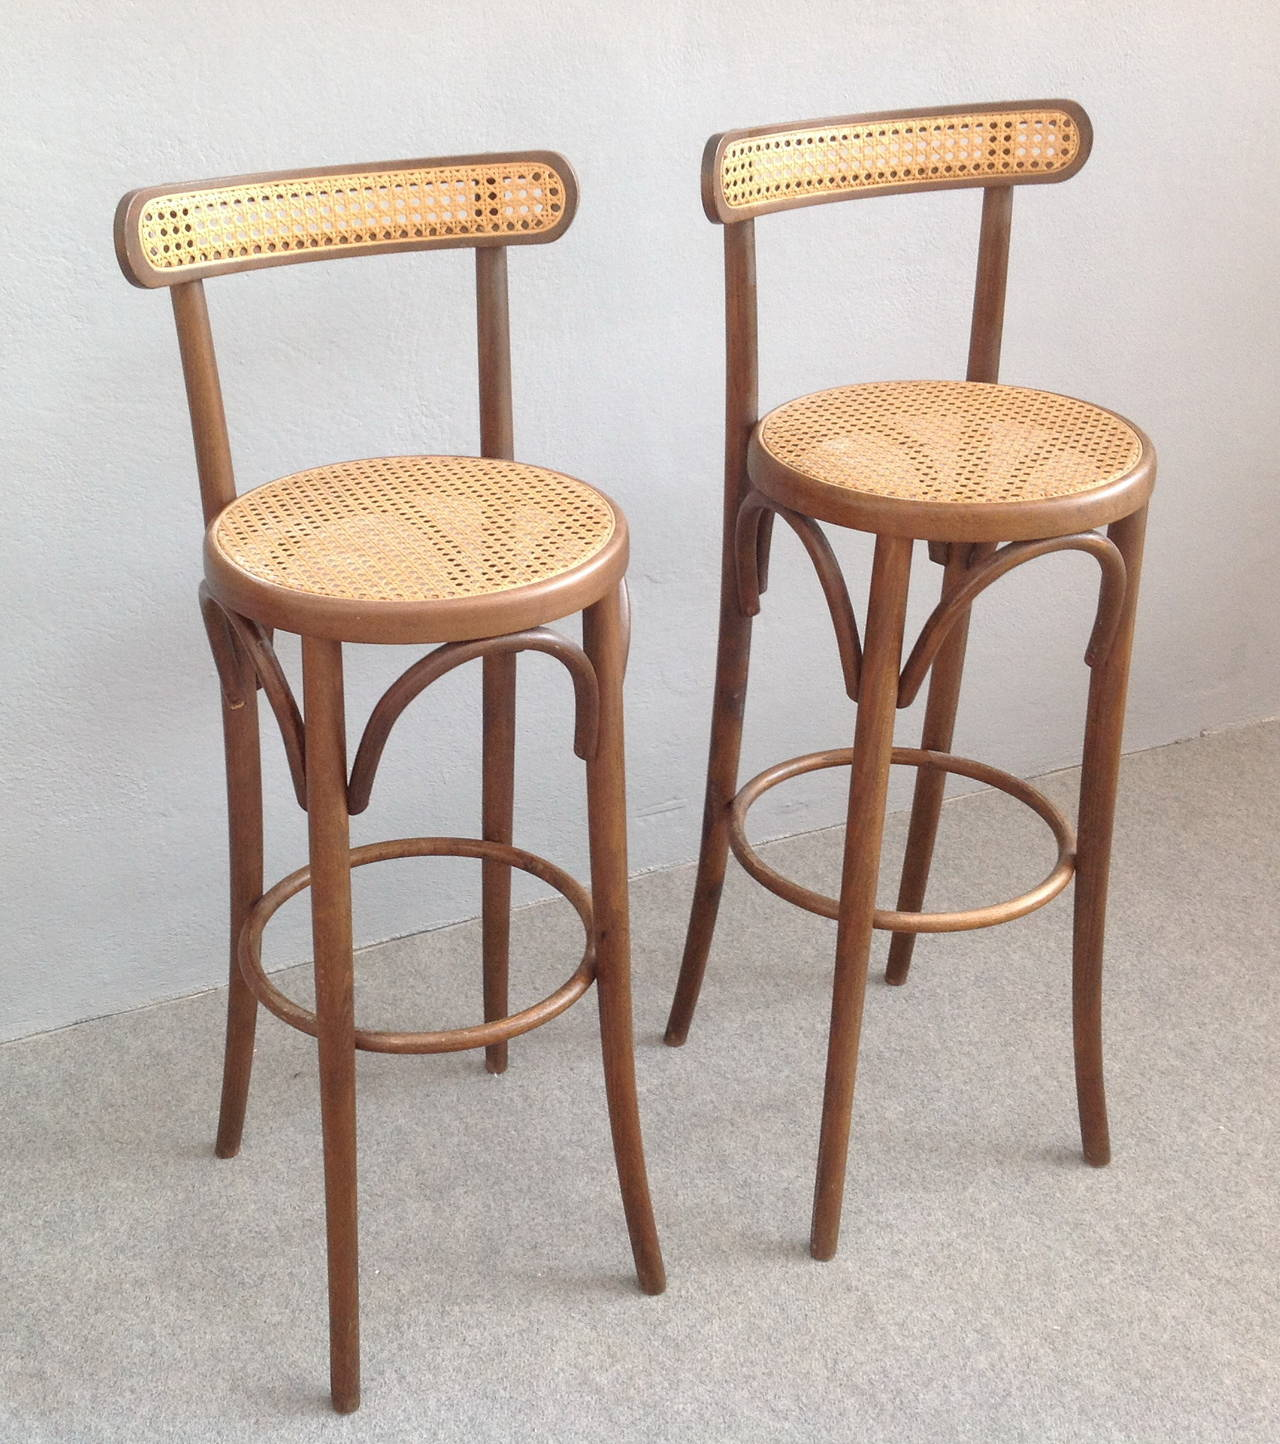 Two Thonet Style Bar Stools Bentwood And Original Cane Seat Back Thonet Stool D82